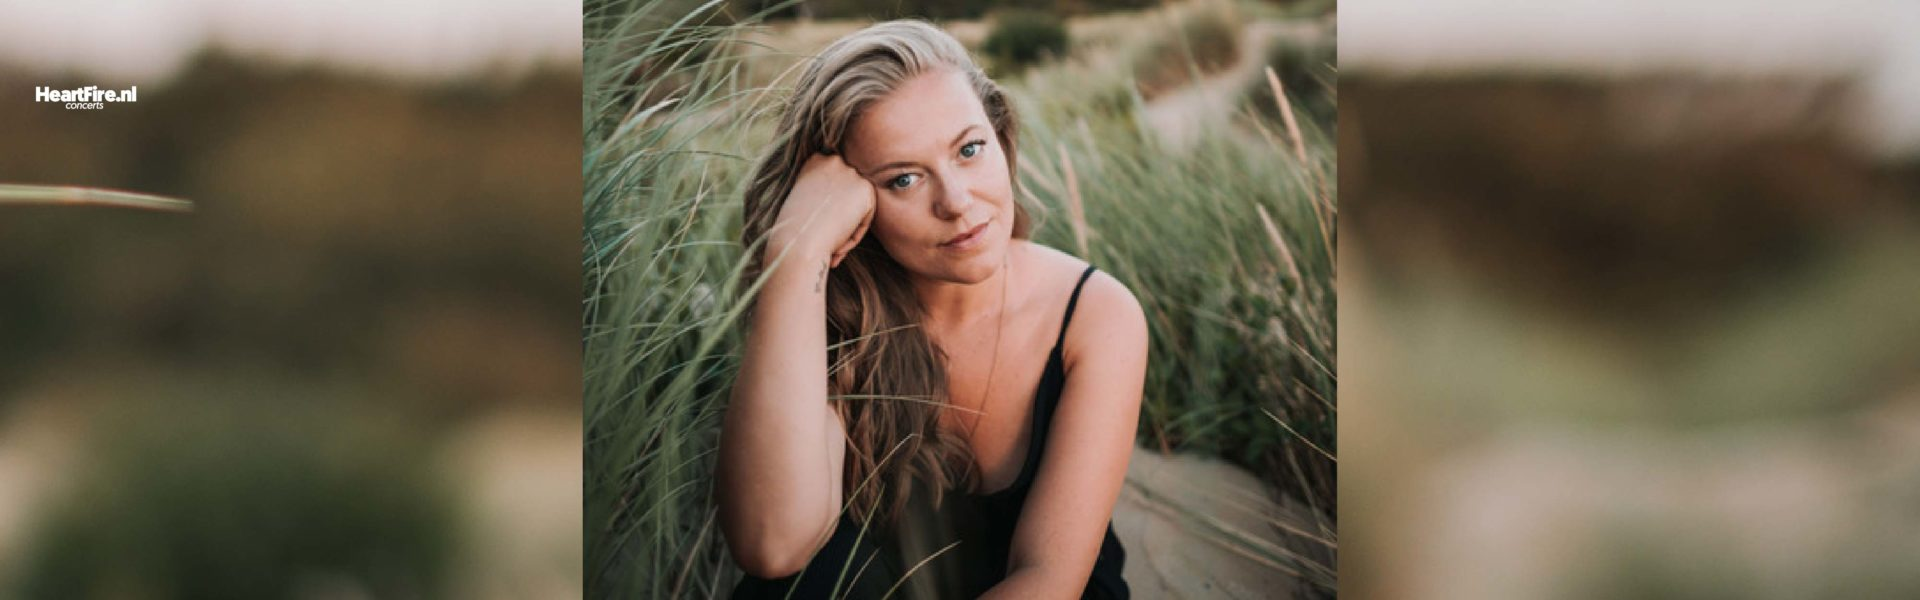 Leonie Bos :: Album Release Concert Celebration @Tobacco Theater 4 november 2020